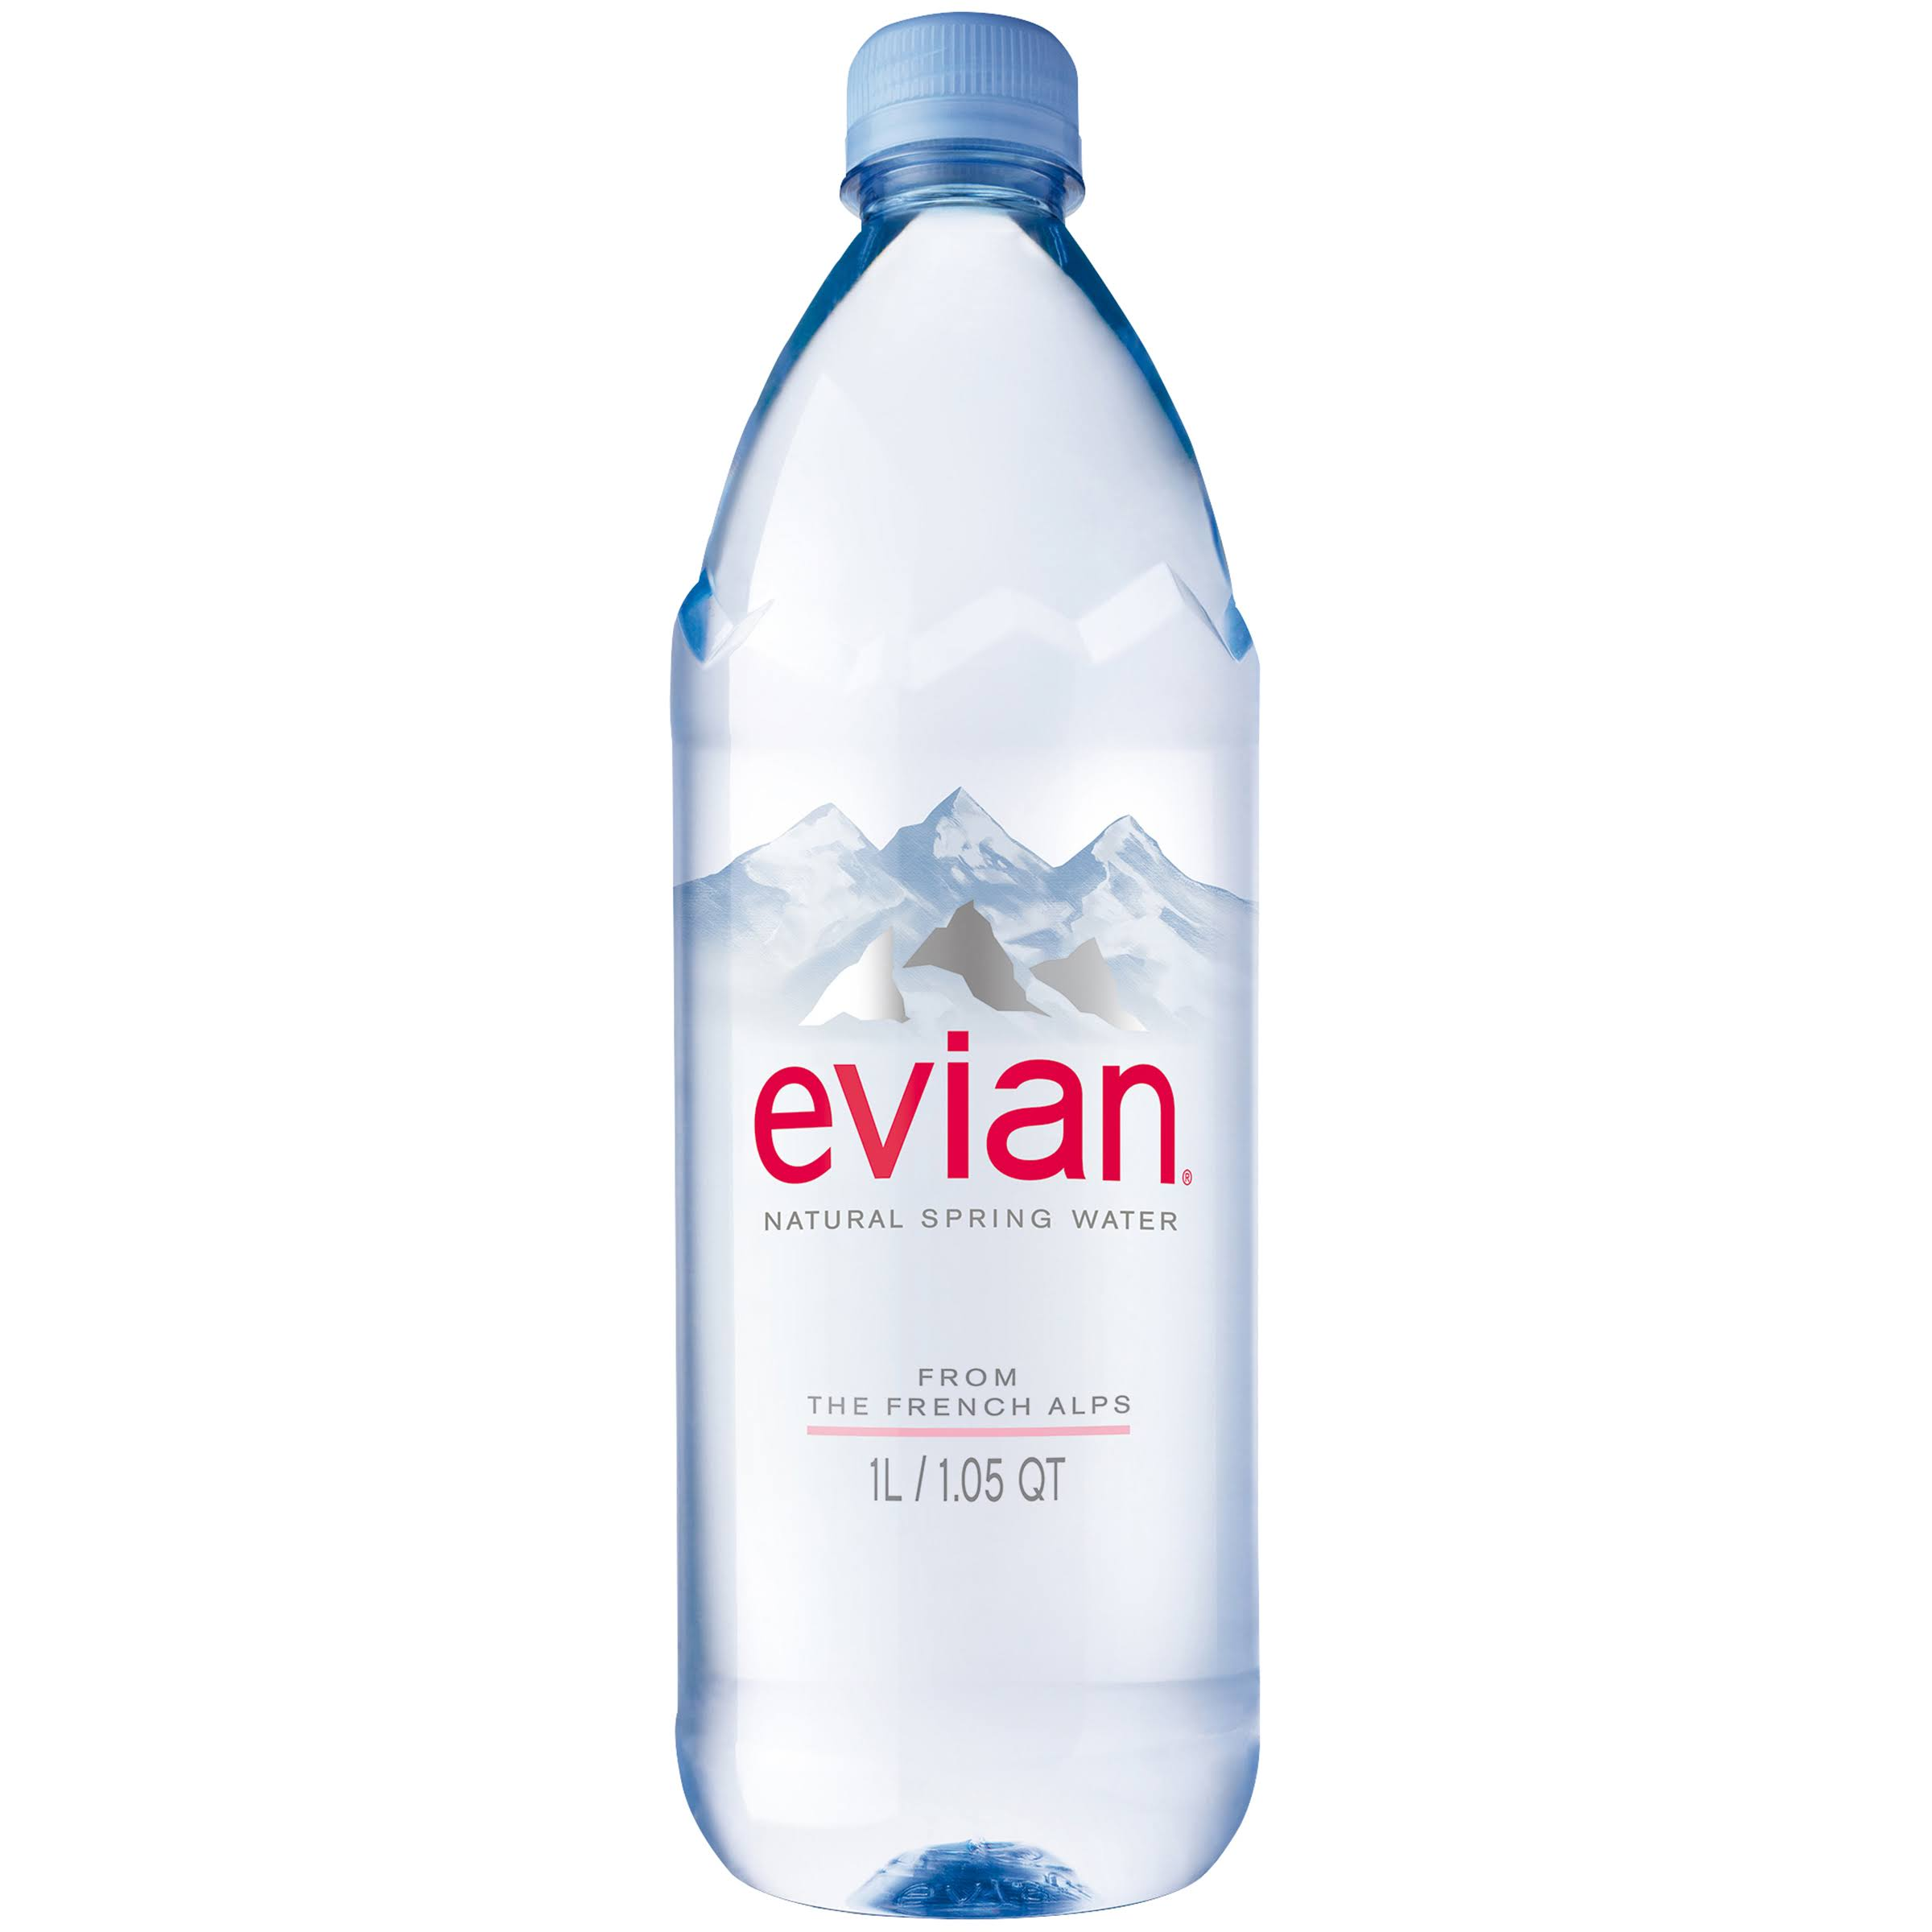 Evian Bottled Water - 1l